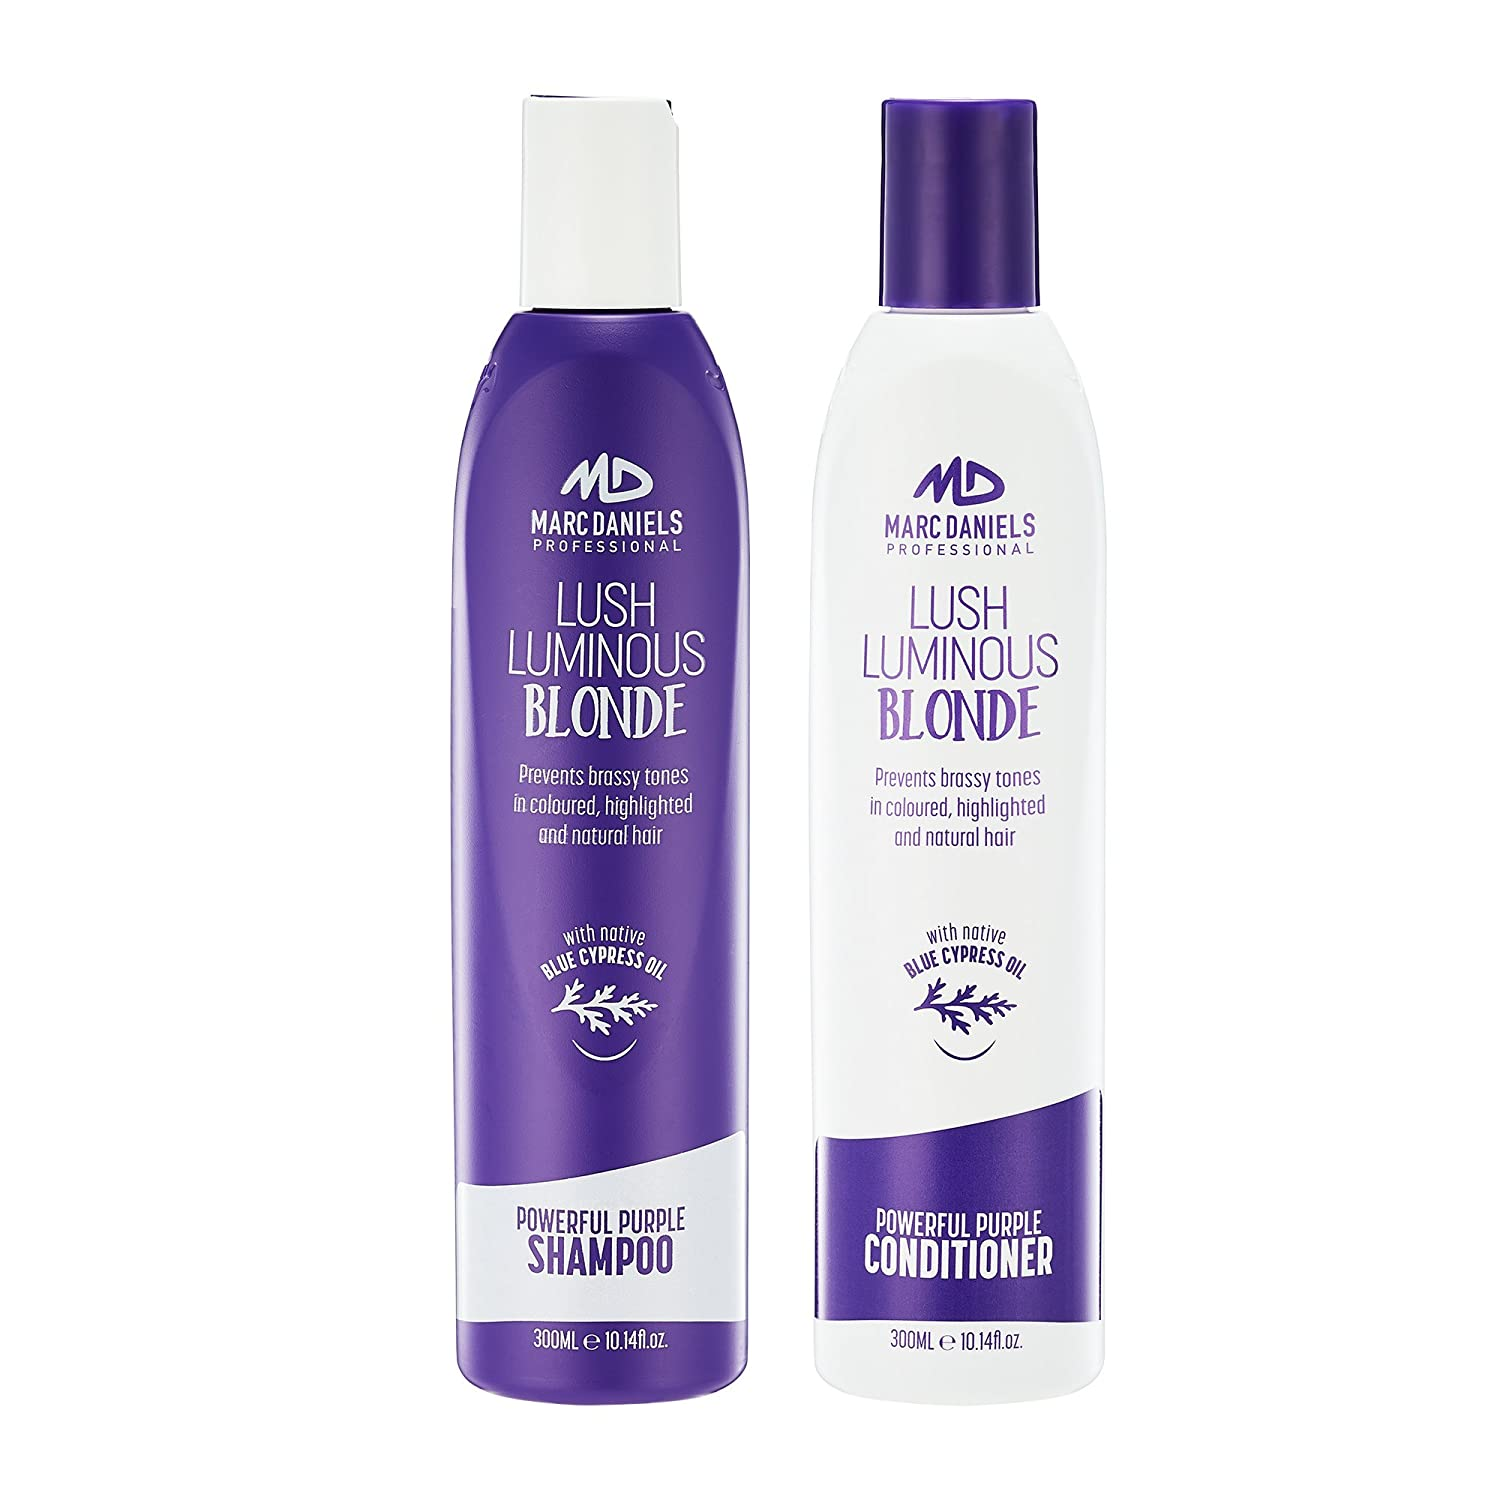 Powerful Purple Shampoo & Conditioner Set, Sulfate Free - Tones, Prevents, Balances Brassiness in Blonde, Color Treated, Silver, Grey Hair - Paraben Free, Vegan Friendly by MARC DANIELS Professional Lenan Corp